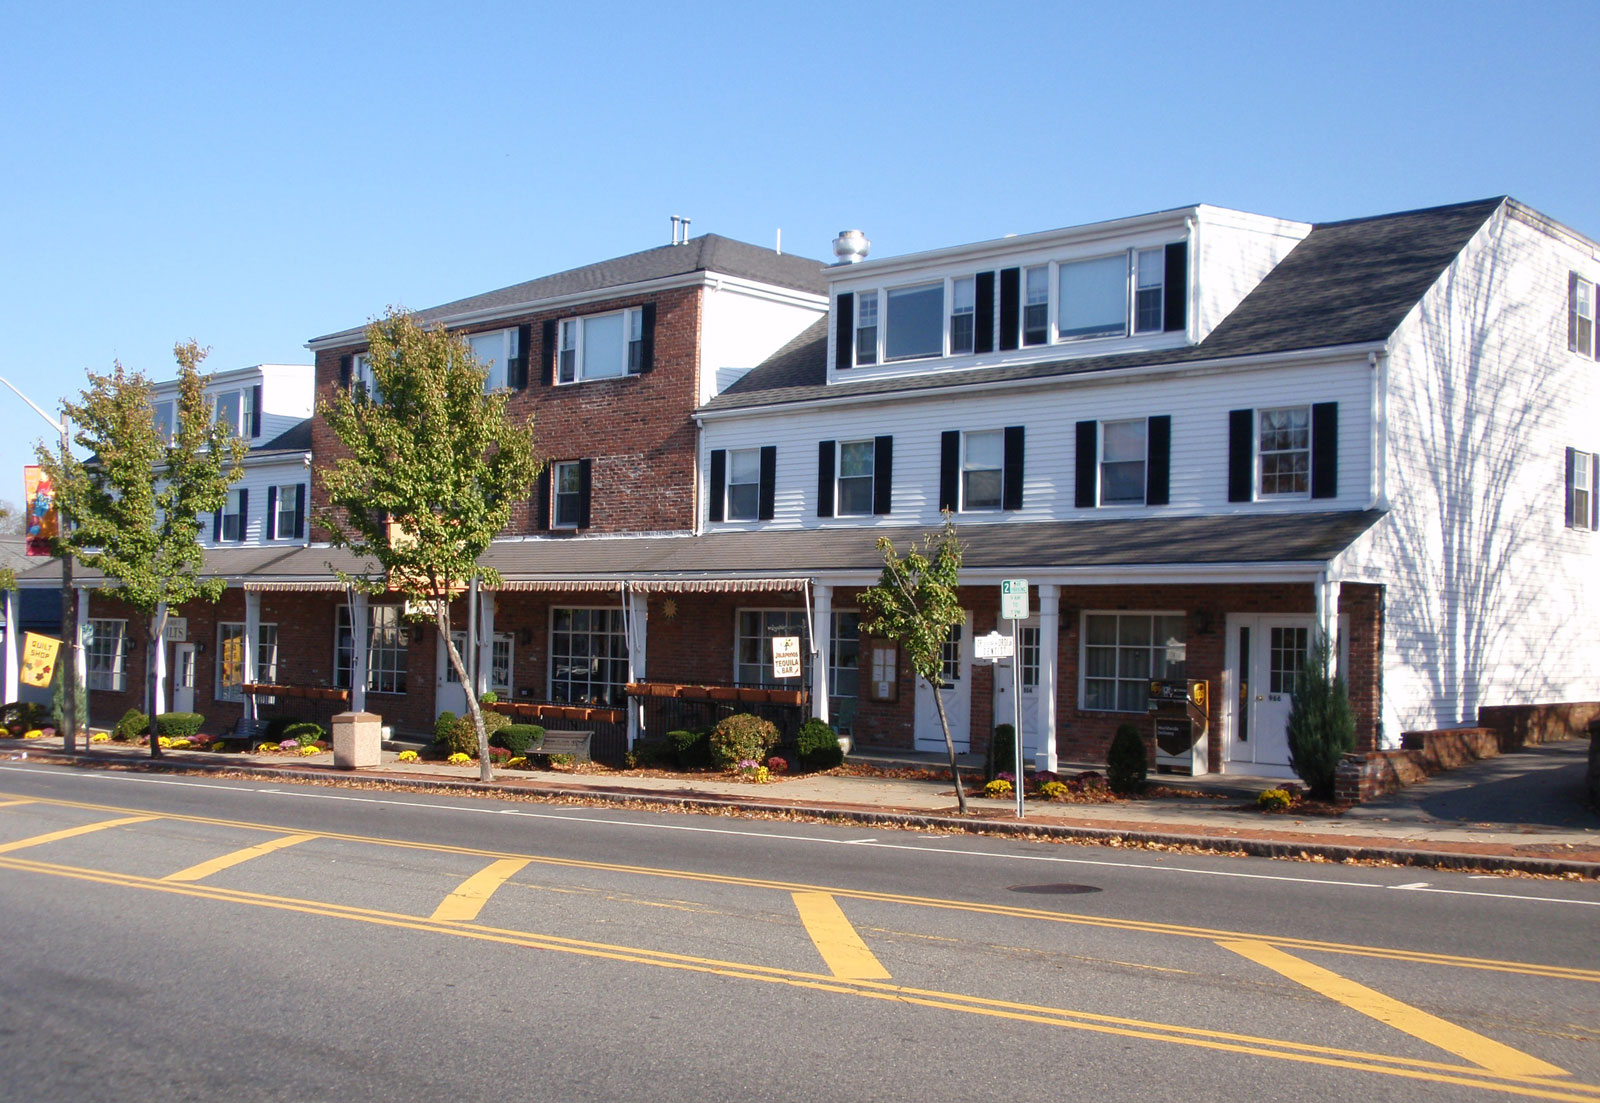 Walpole center 2 bedroom apartments jd murphy real estate publicscrutiny Image collections